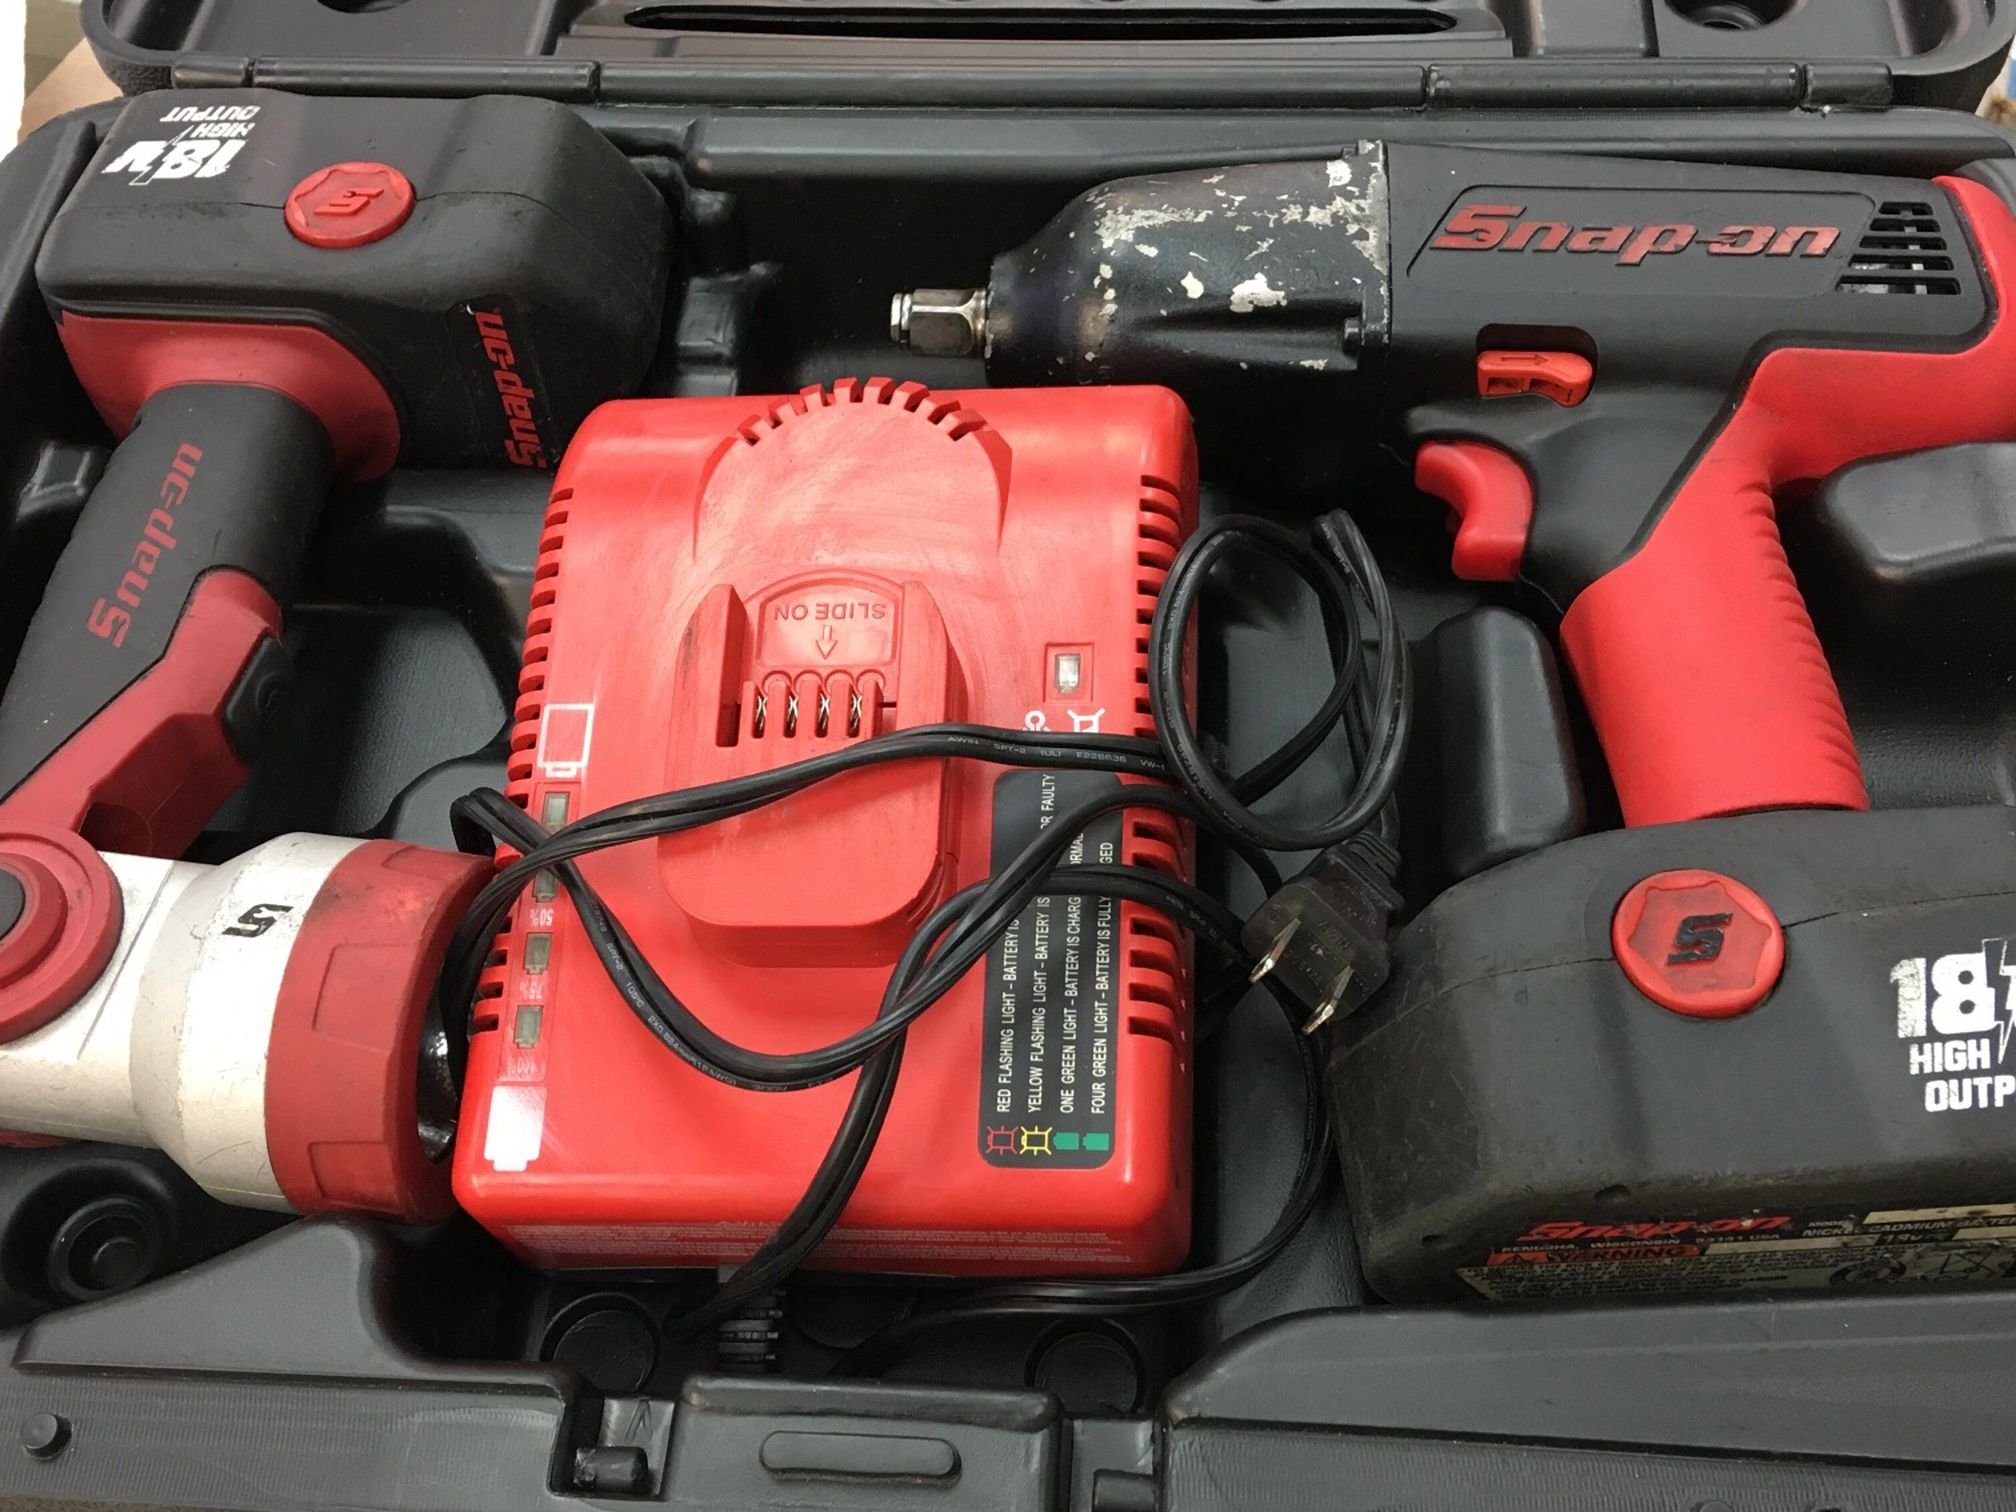 """Snap On 18v Lithium Cordless 1/2"""" Impact Wrench Drill W Flashlight 2x Batteries, Charger And Case!"""